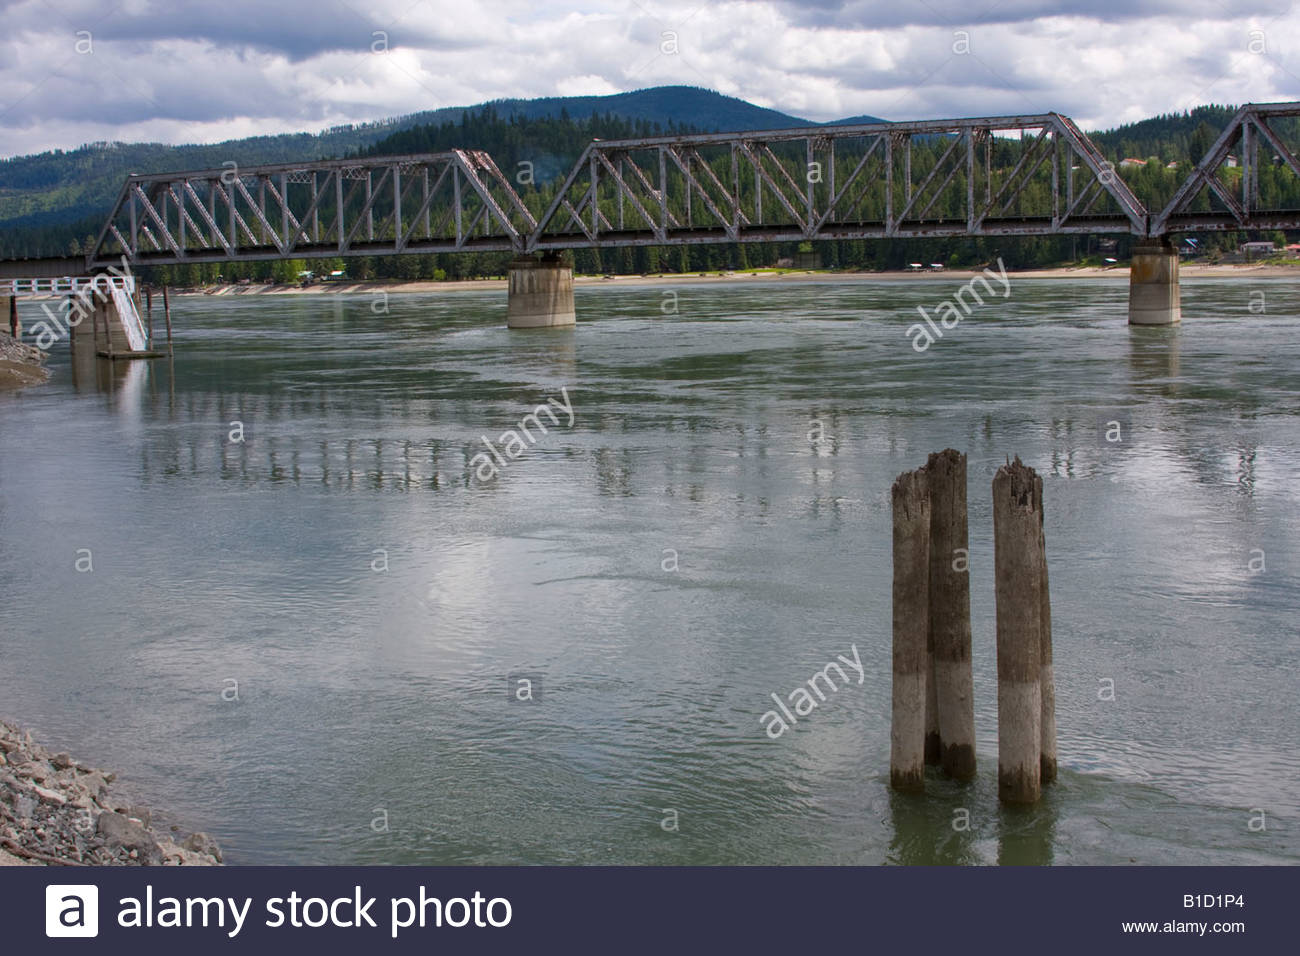 Railroad bridge over the Pend Oreille River in North Idaho on a cloudy day with pilings in the foreground. - Stock Image